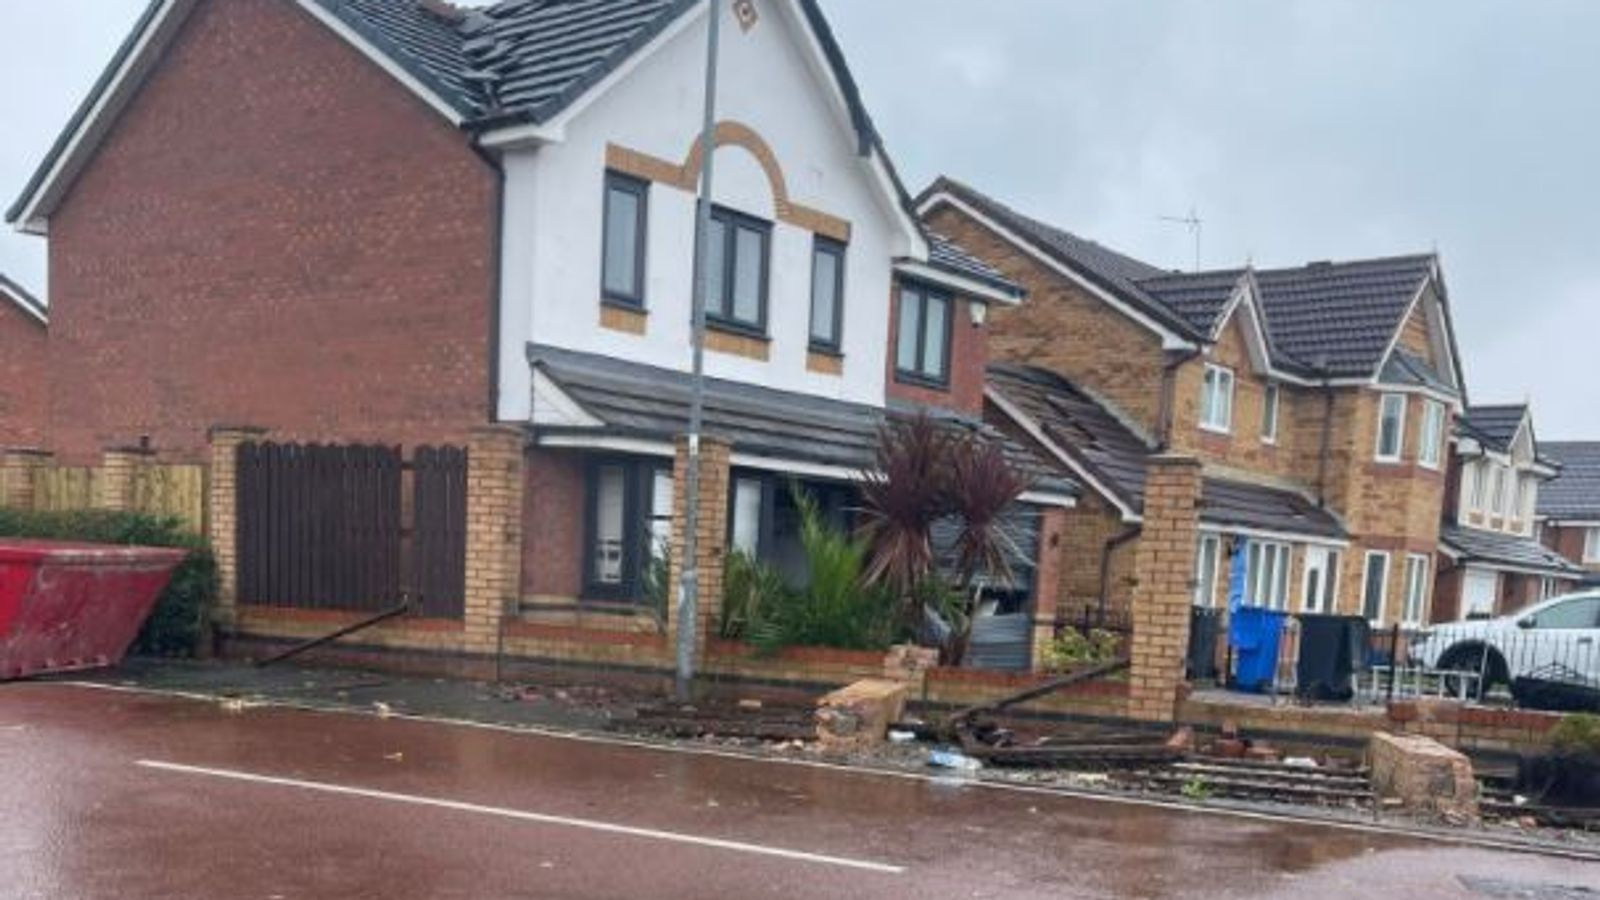 UK weather: 'Mini-tornado' leaves trail of destruction in Cheshire town